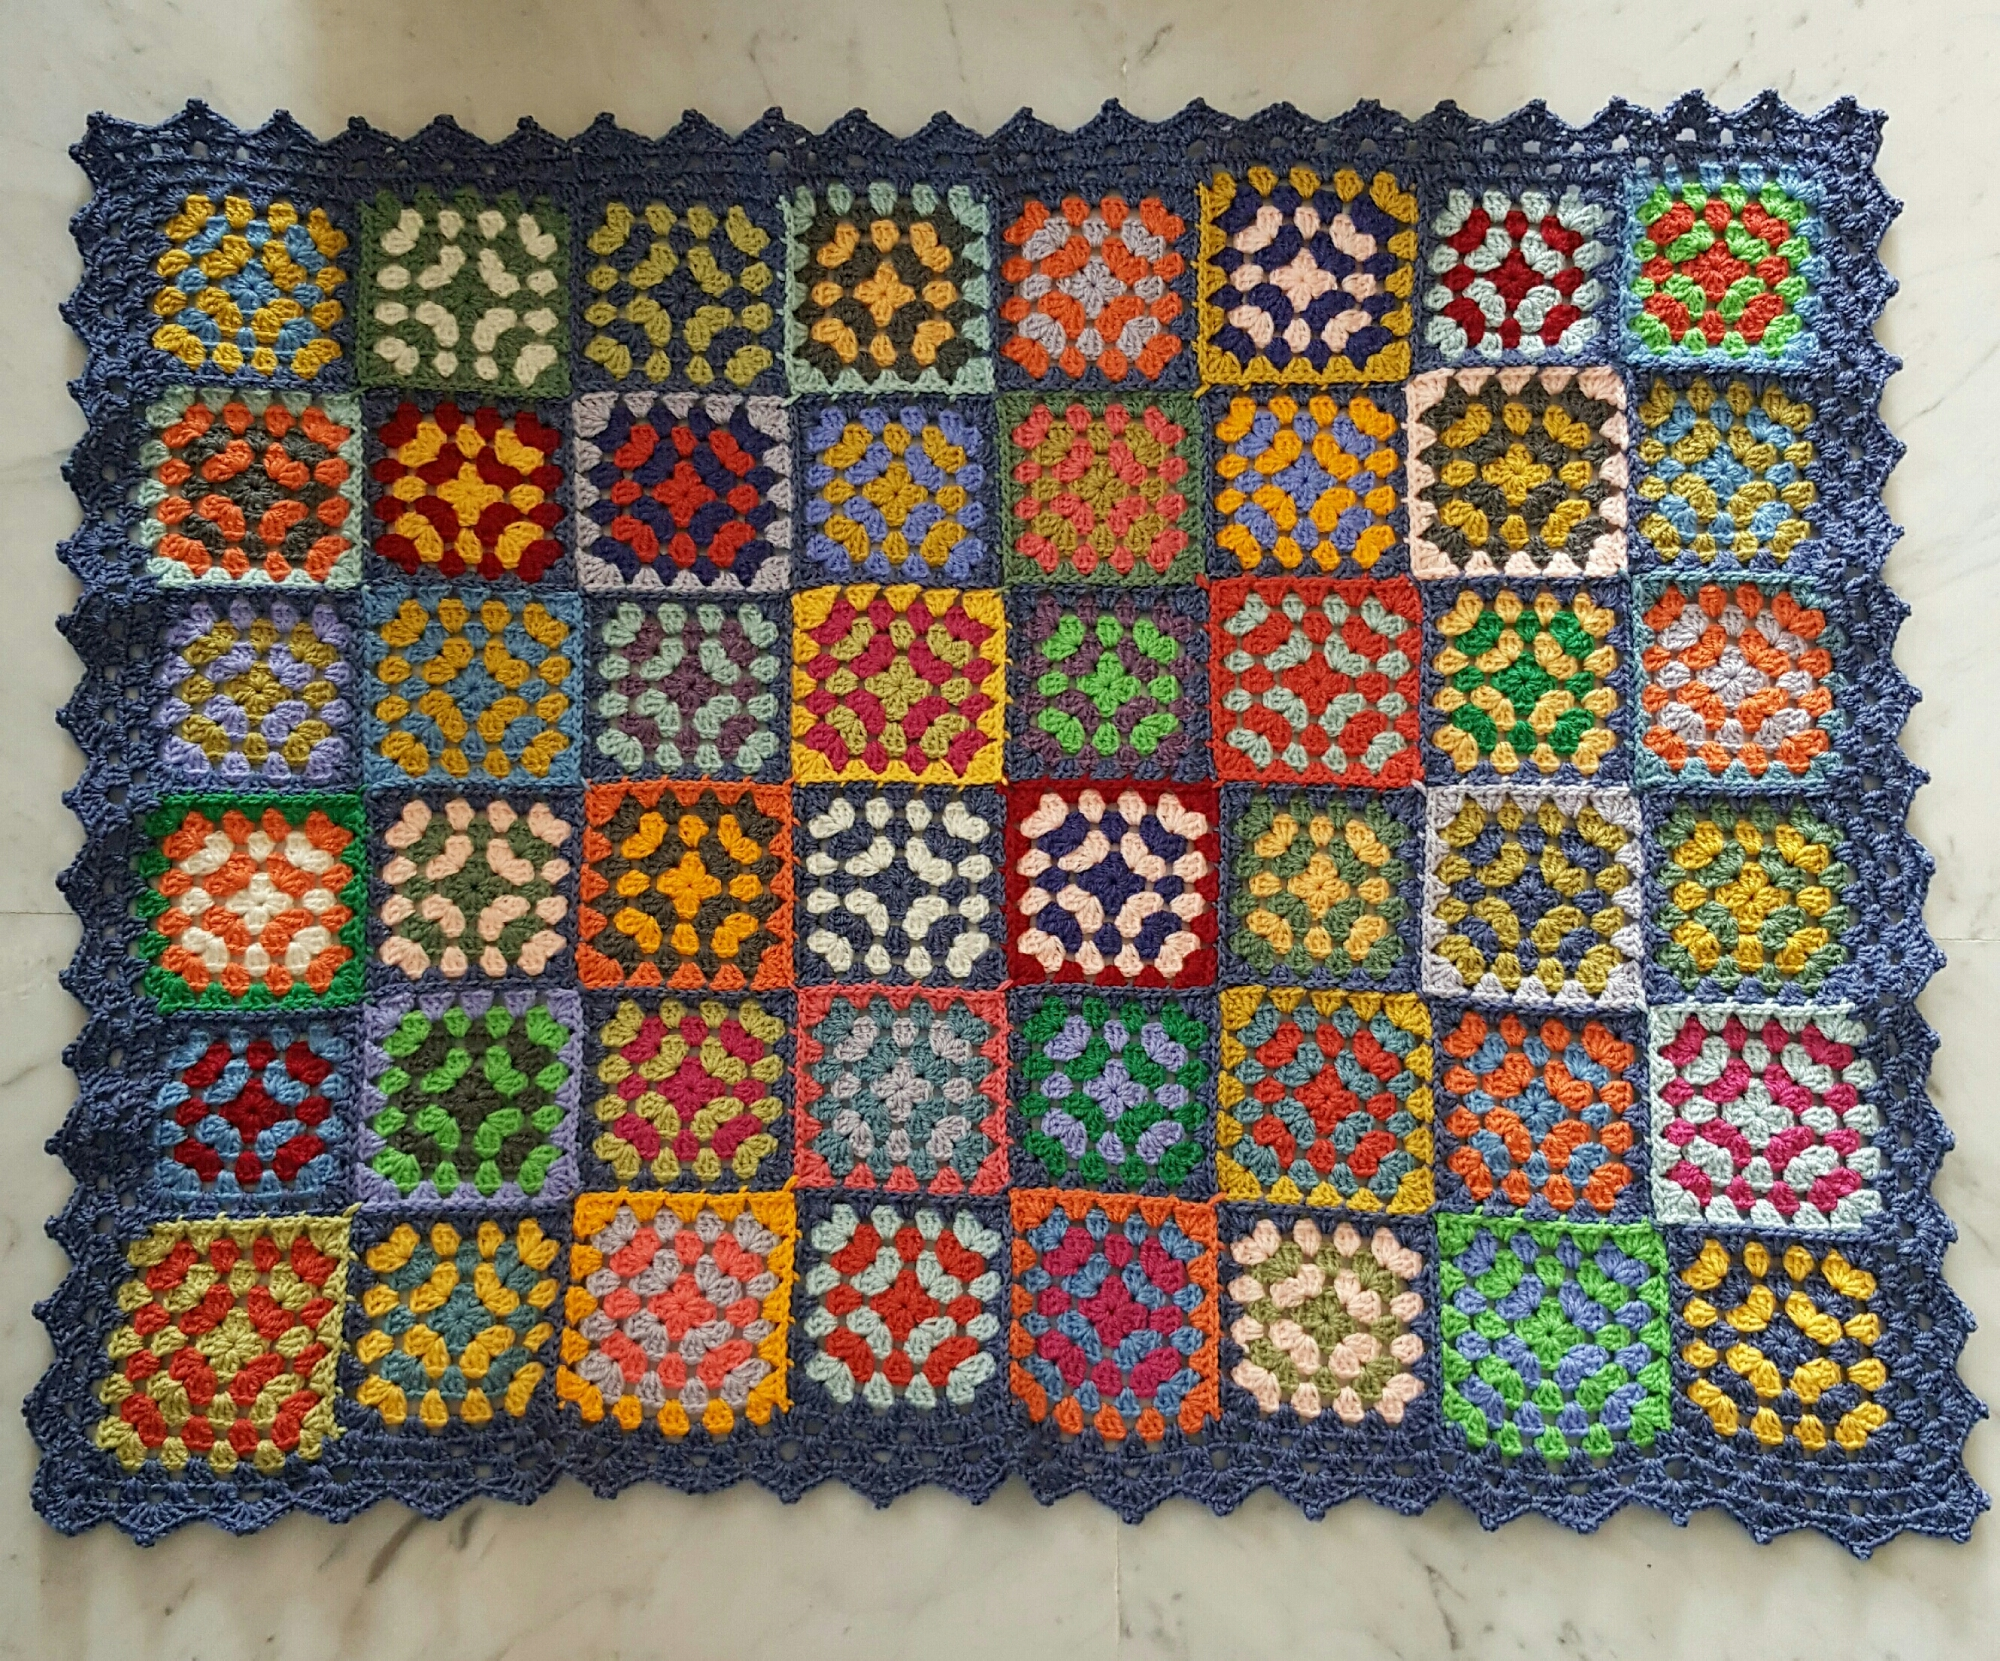 The stained glass baby blanket 💙